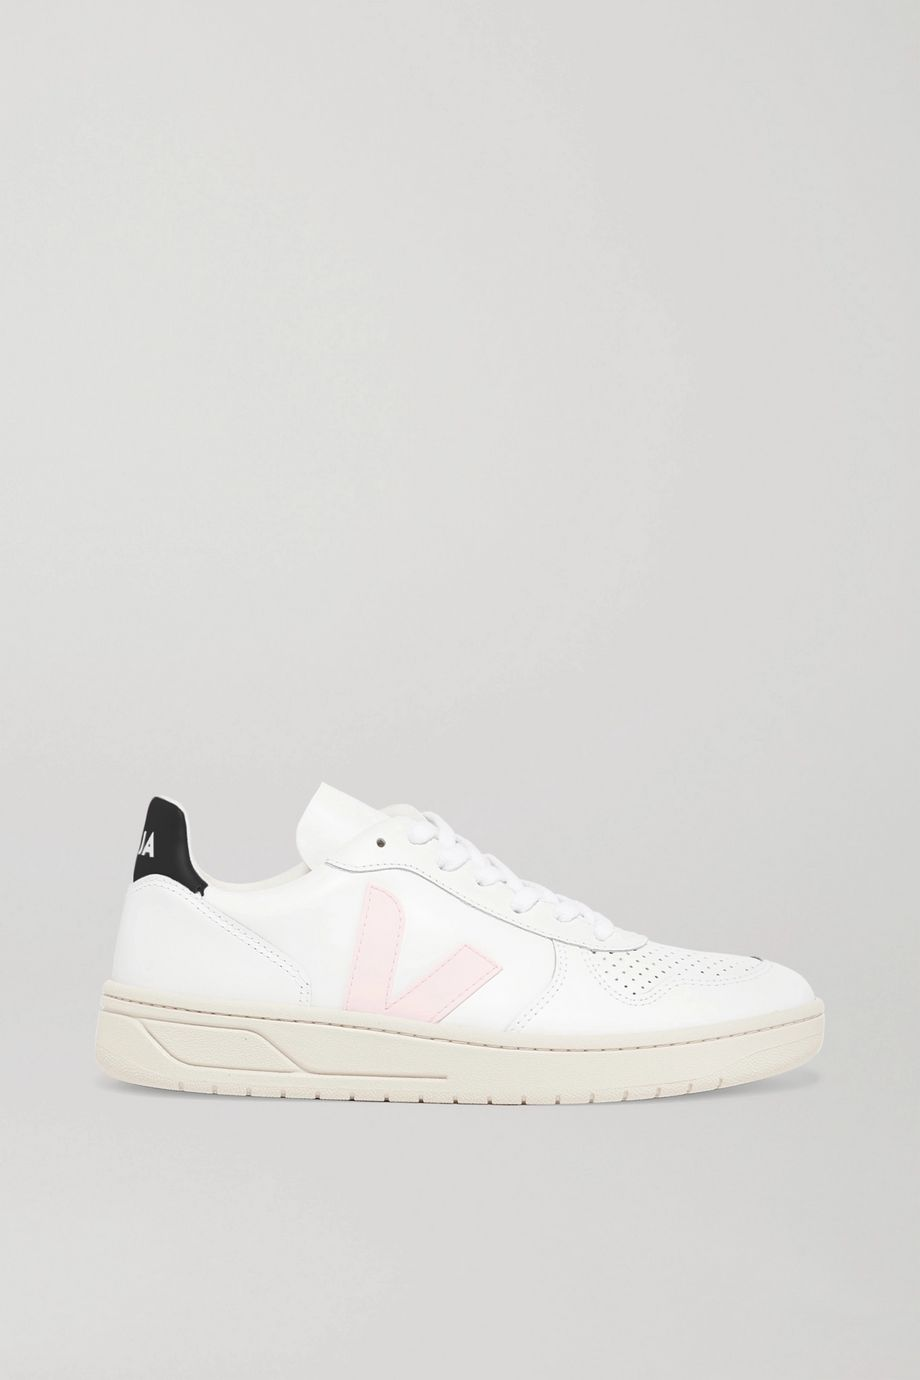 Veja + NET SUSTAIN V-10 leather sneakers